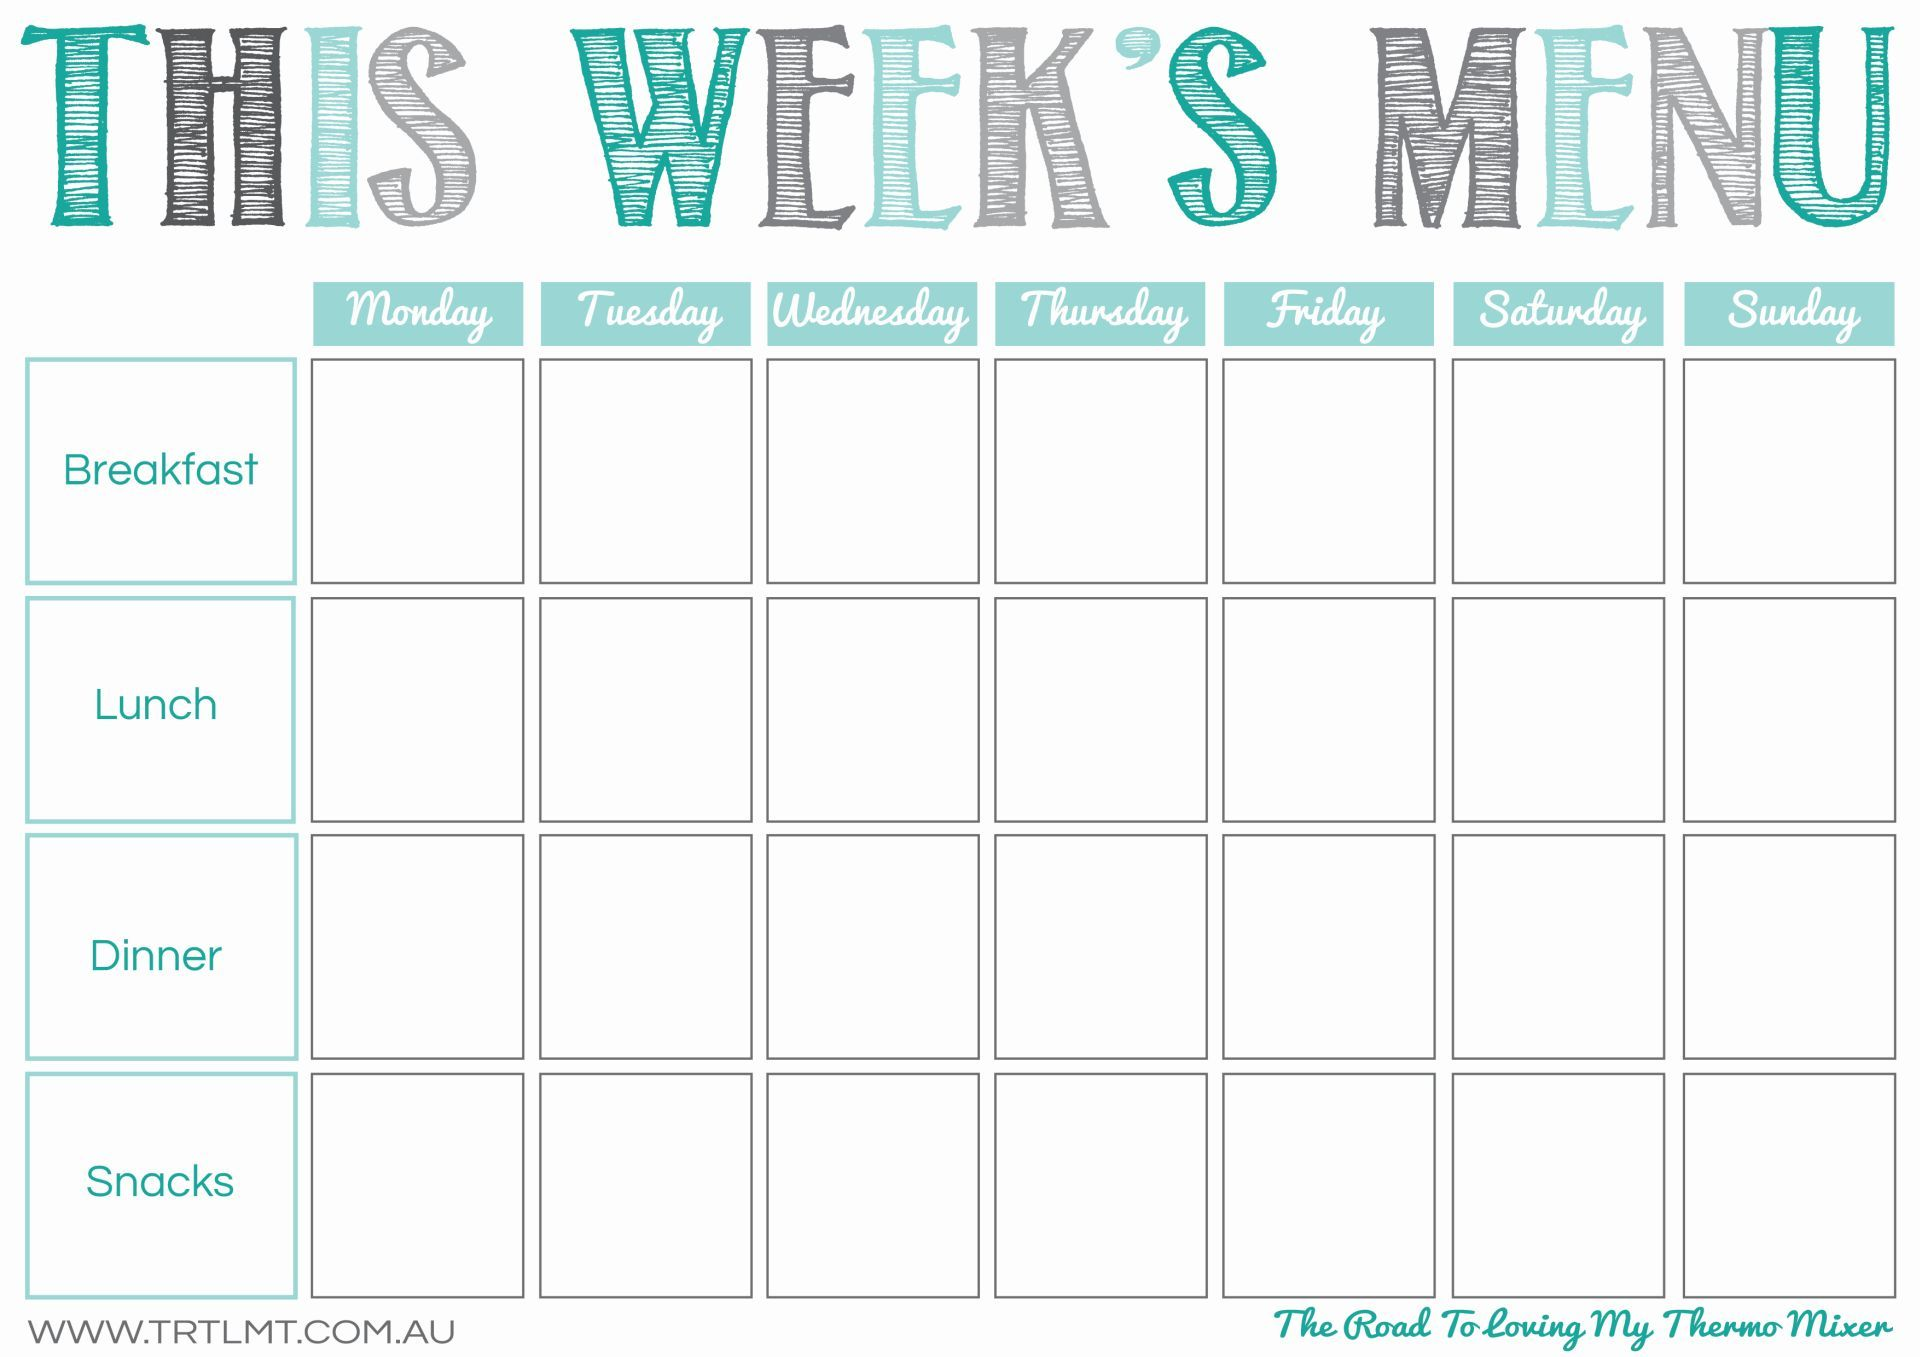 This Week's Menu 2 FB Meal planning printable, Meal